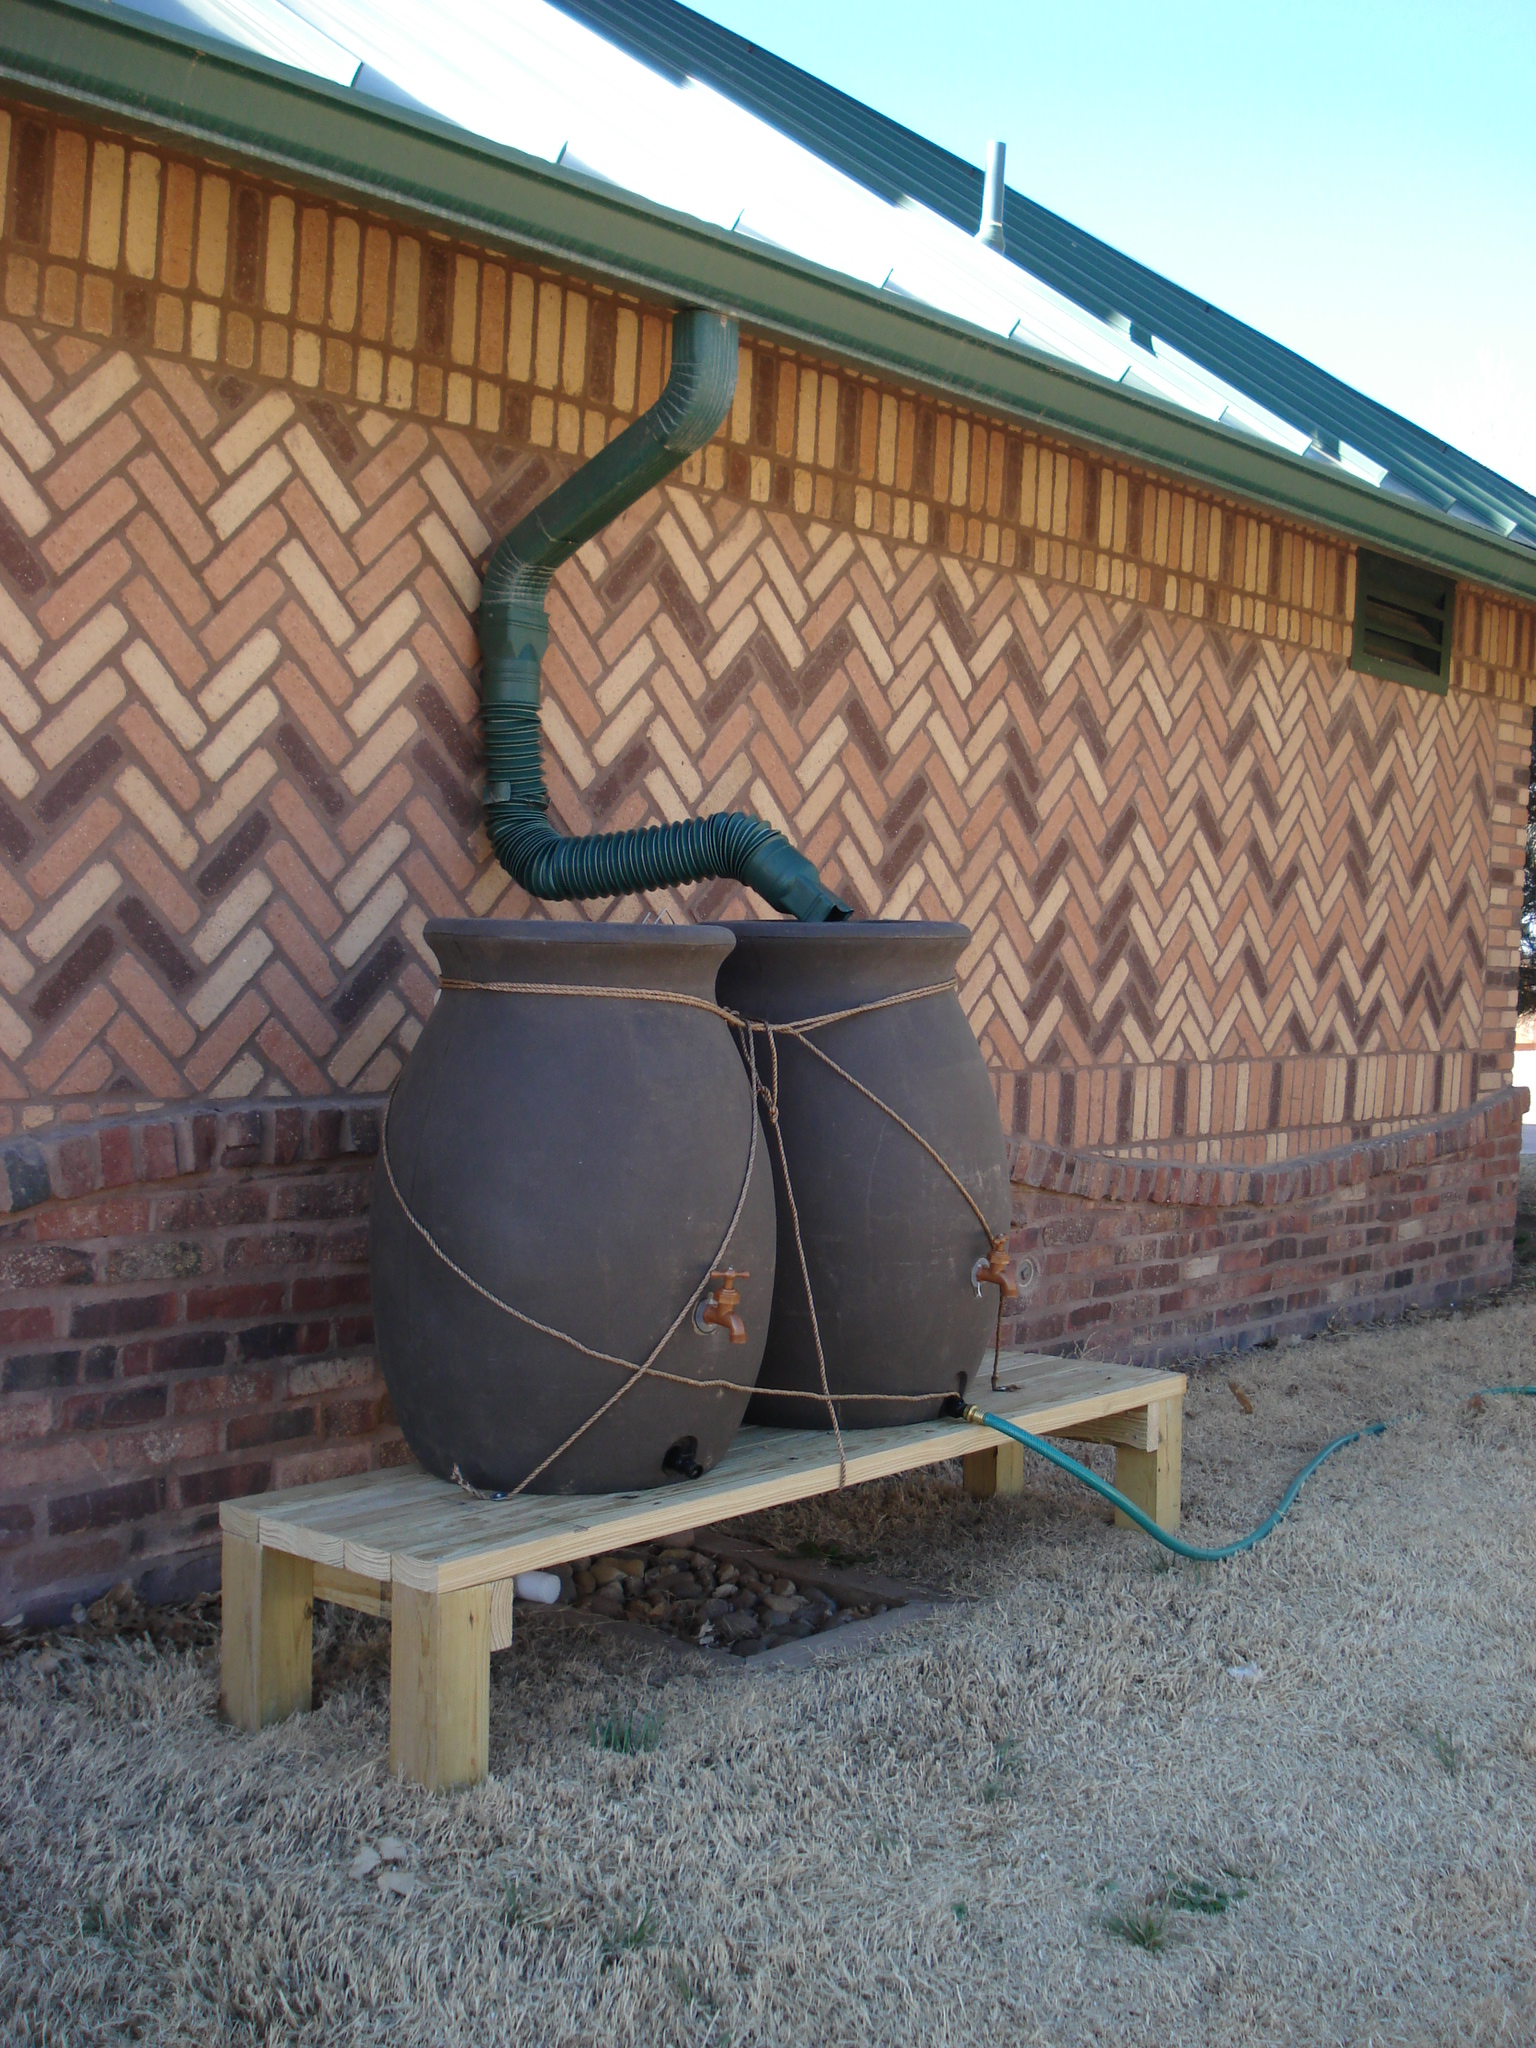 Rain barrels outside Herpetarium